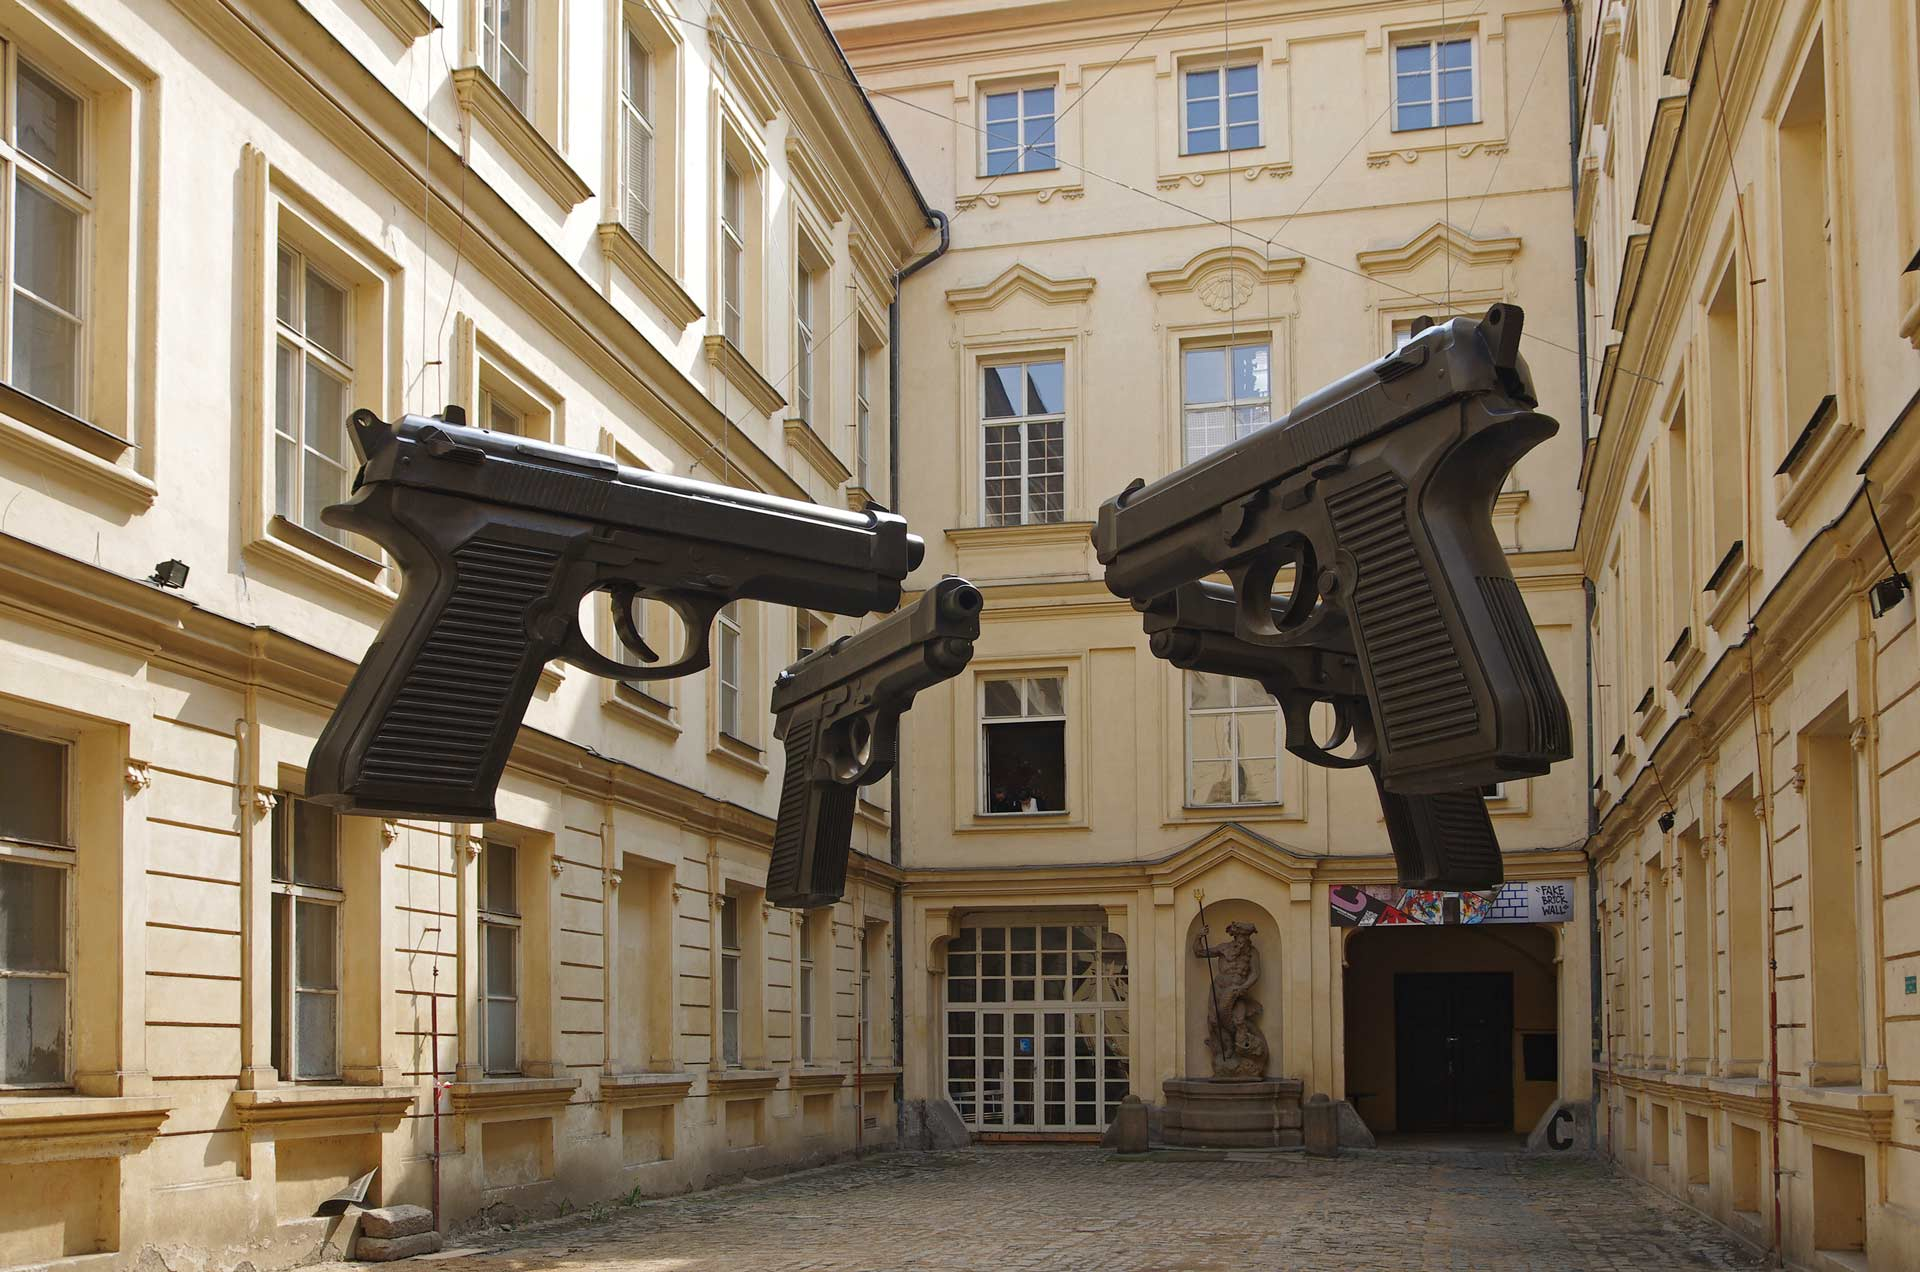 Contemporary-art-in-Prague---Guns-by-famous-Bohemian-artist-David-Cerny